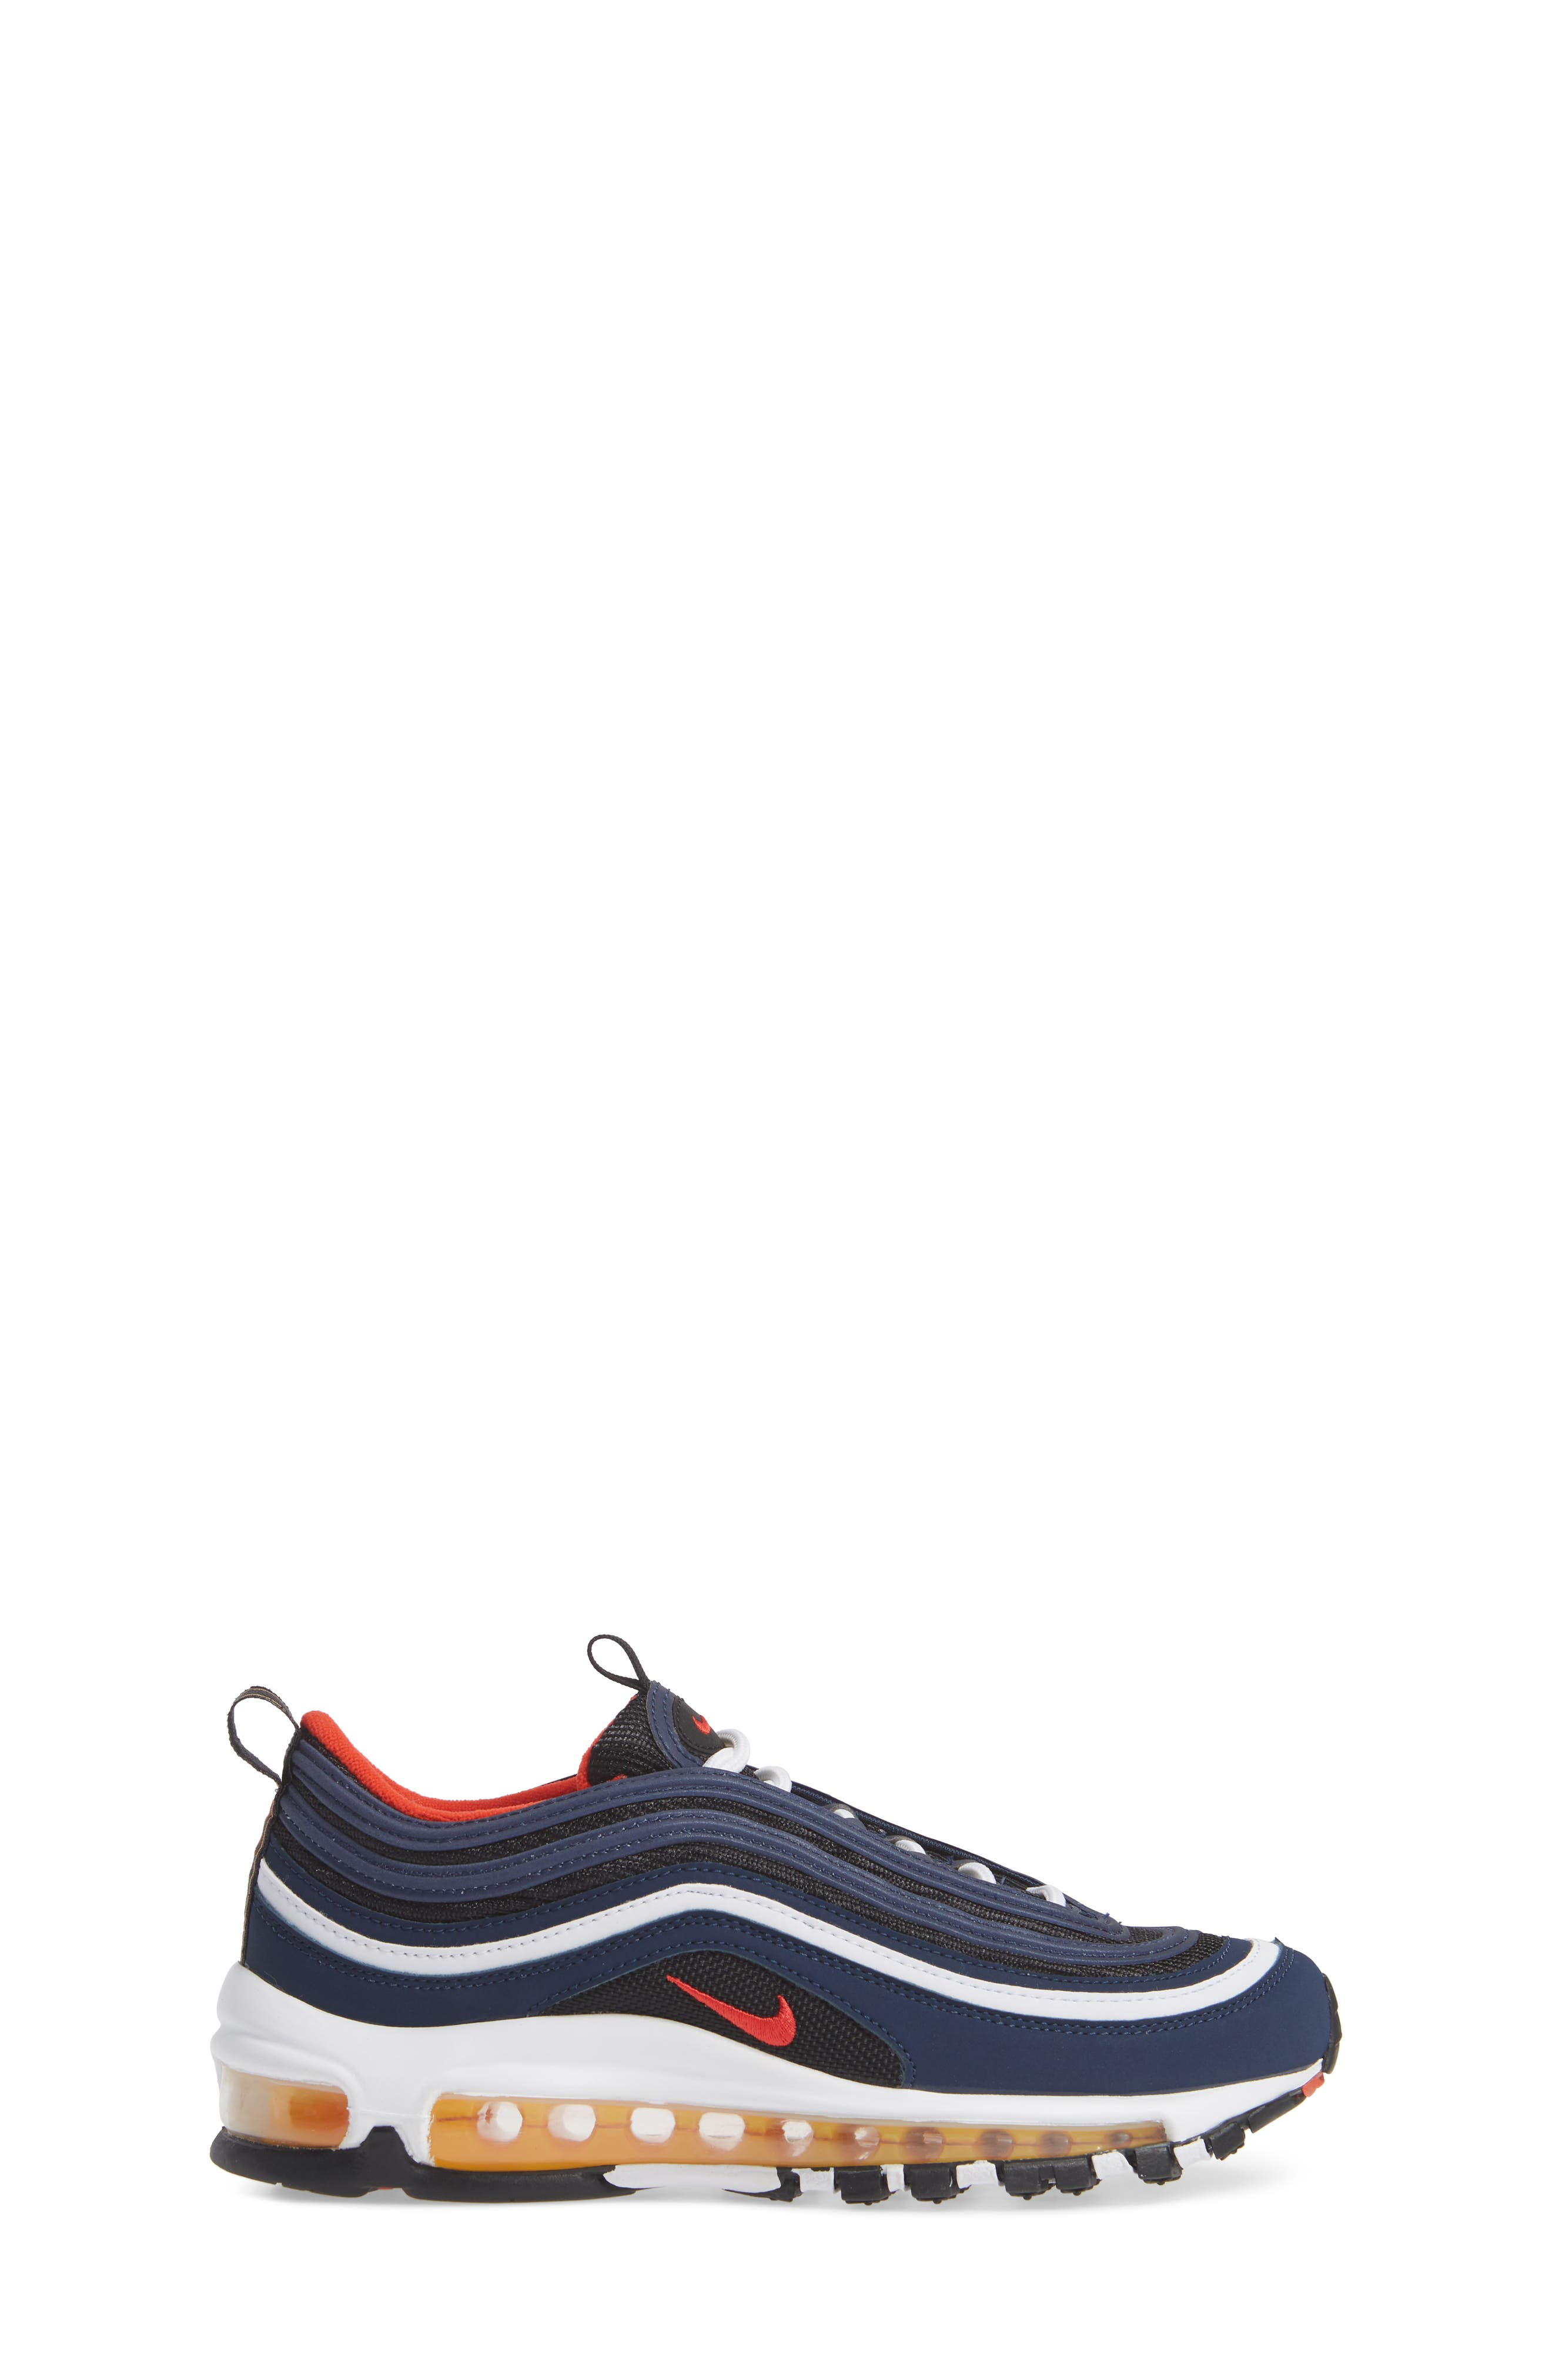 Air Max 97 Sneaker,                             Alternate thumbnail 3, color,                             MIDNIGHT NAVY/RED BLACK WHITE